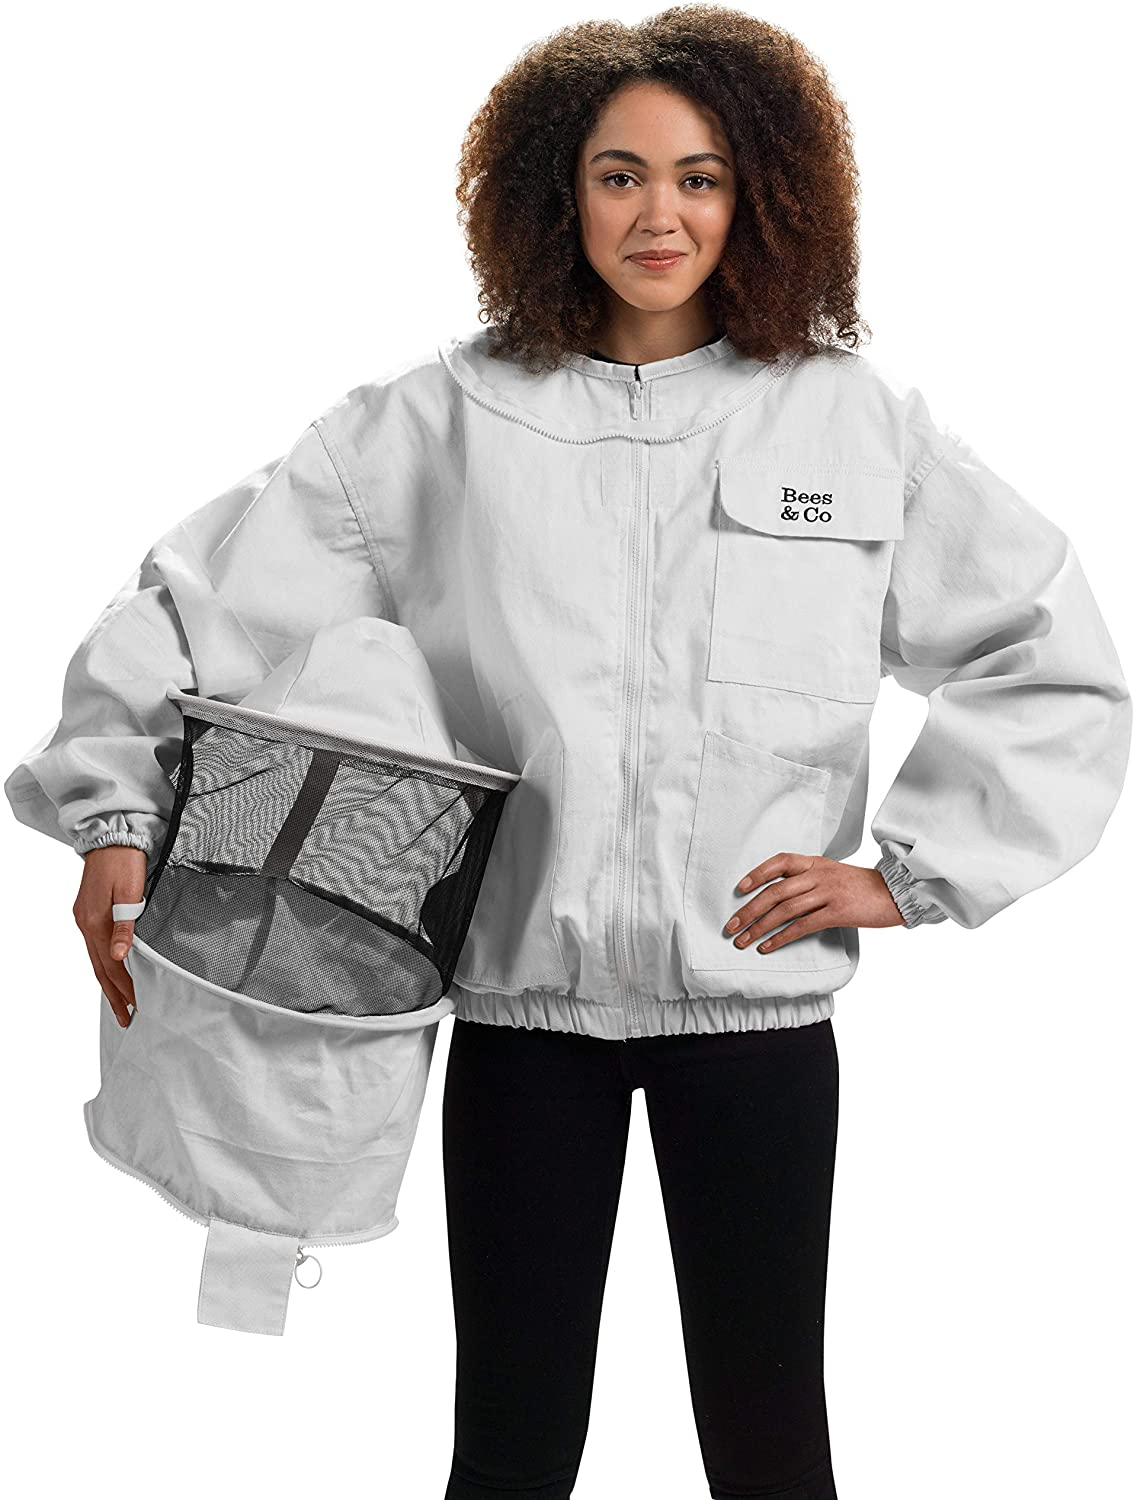 Bees & Co K73 Natural Cotton Beekeeper Jacket with Round Veil